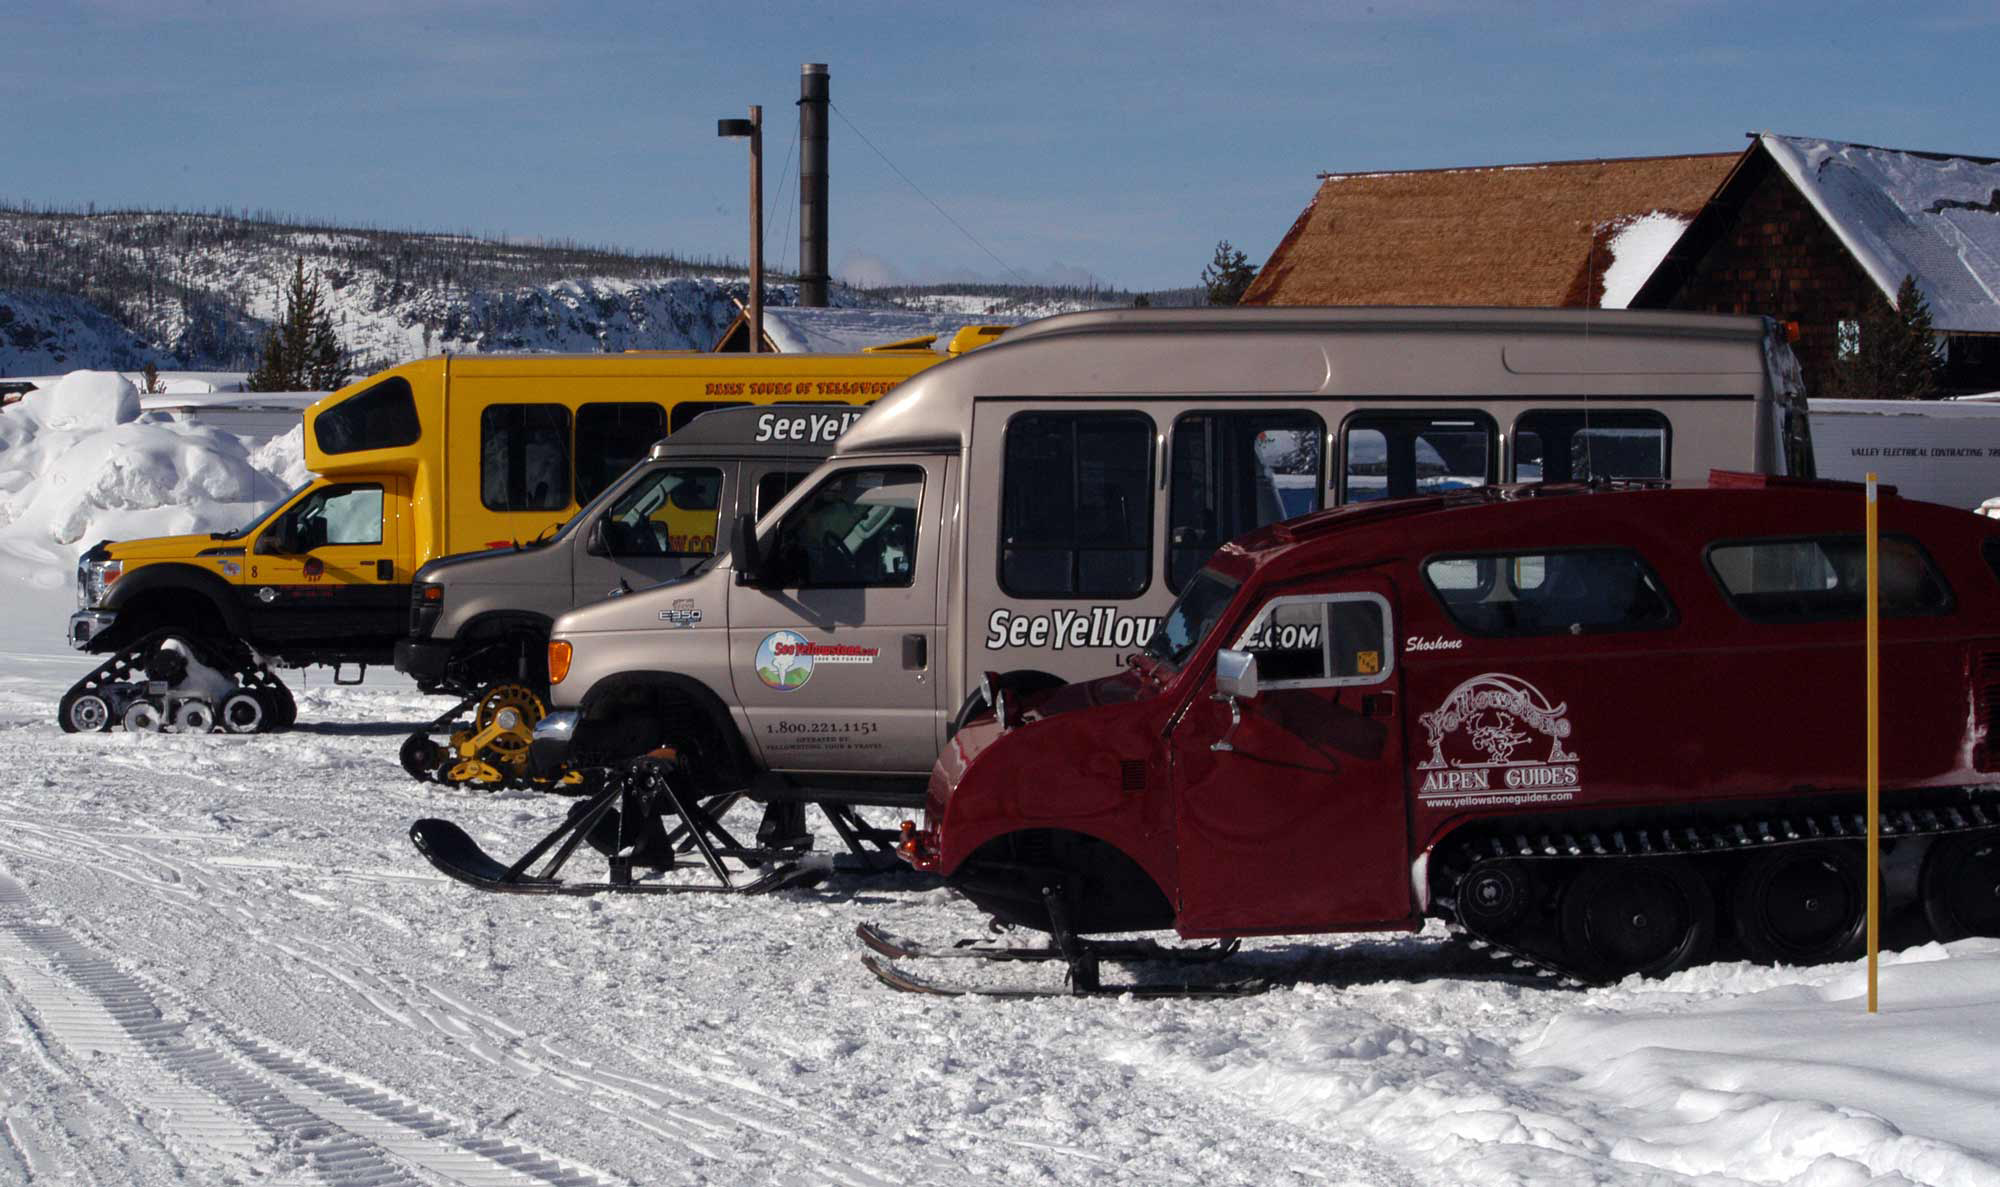 Snow coaches operated by private tour guide companies are parked near Old Fiathful Geyser in Yellowstone National Park. (Ruffin Prevost/Yellowstone Gate - click to enlarge)